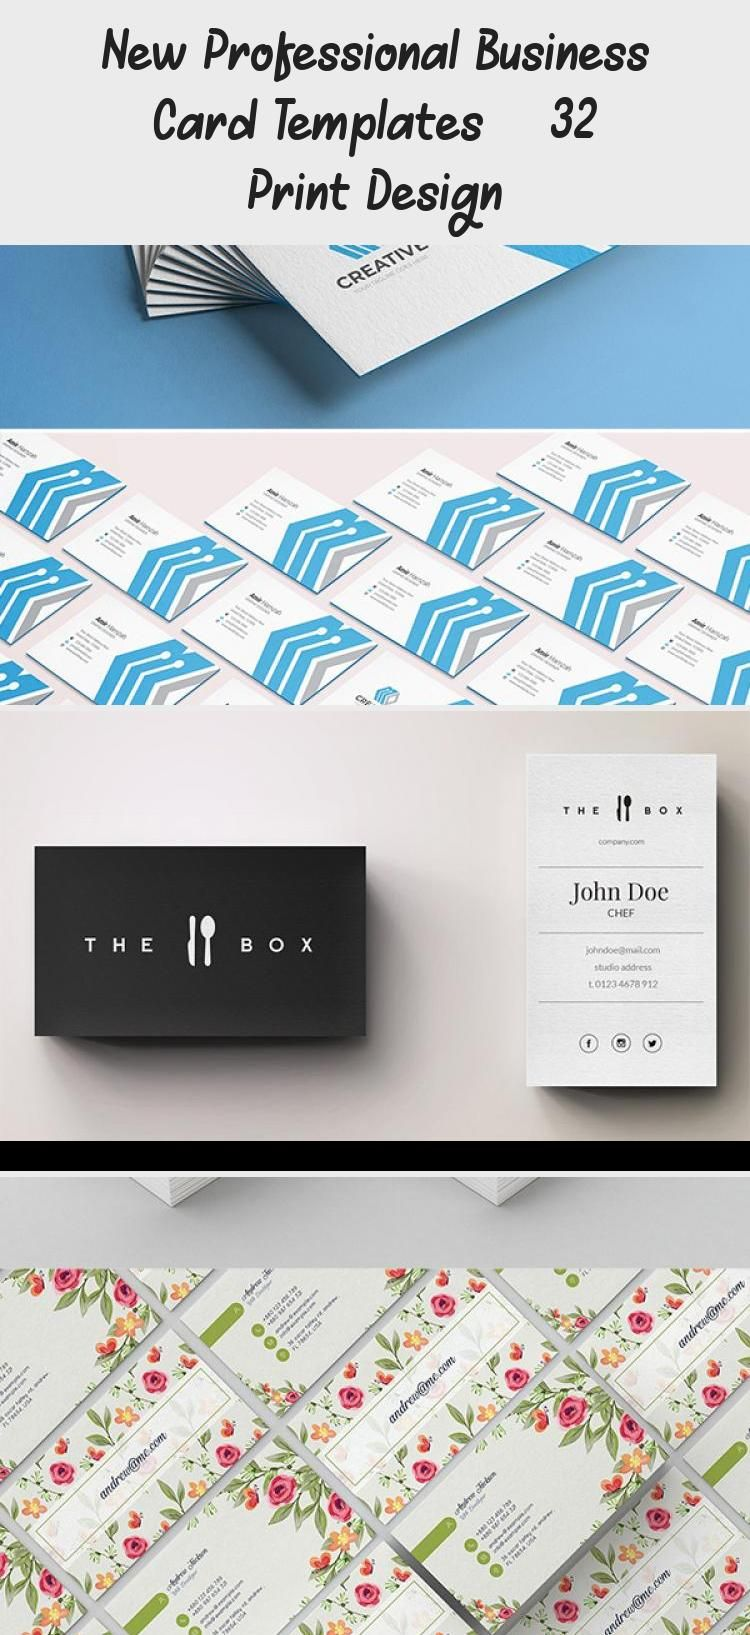 Elegant Minimal Business Card Digitalbusinesslogo Elegantbusinesslog Clean Business Card Design Professional Business Cards Templates Printing Business Cards